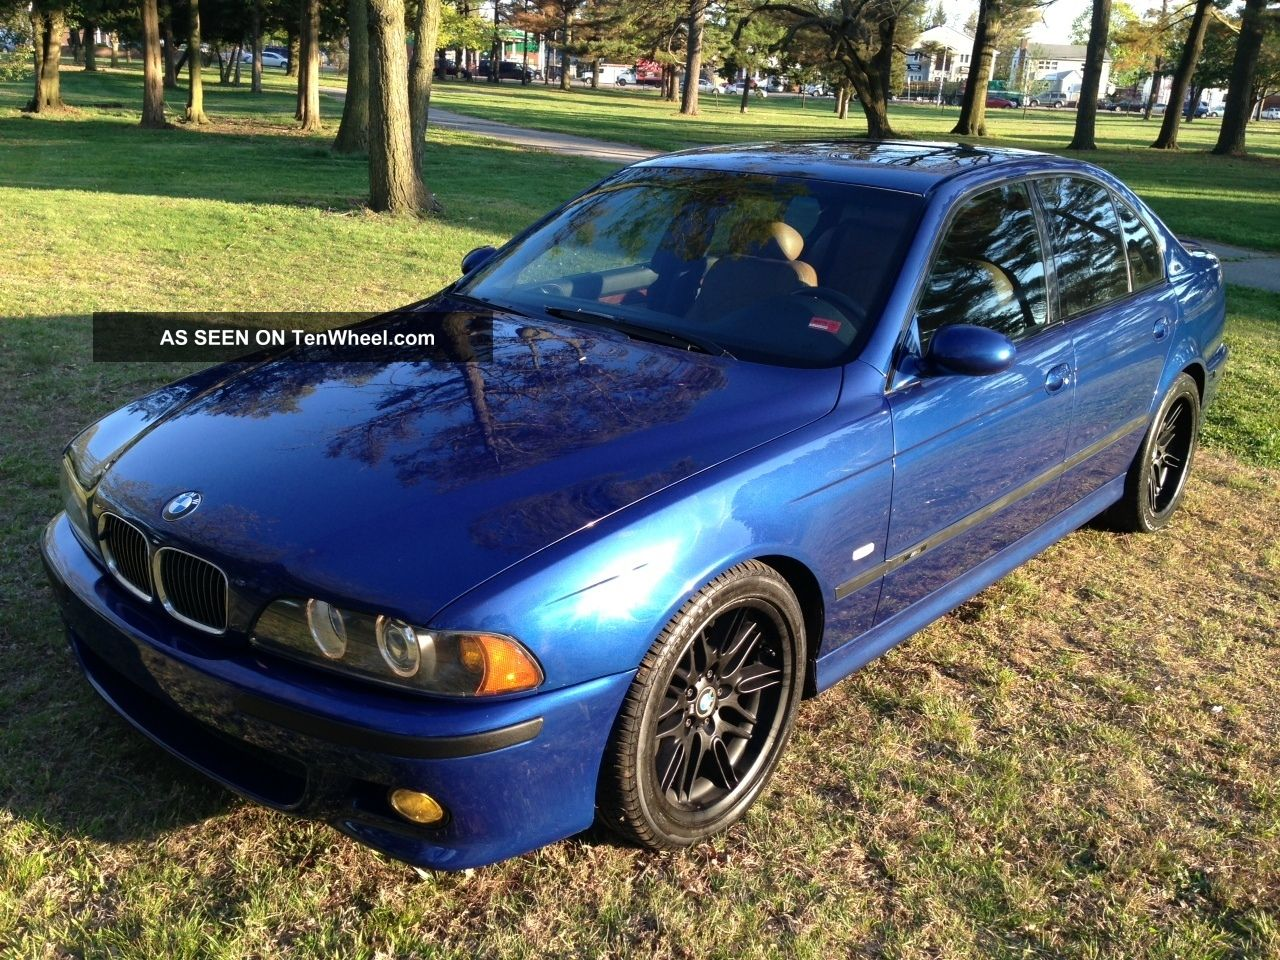 2000 Bmw M5 Lemans Blue / Caramel M5 photo